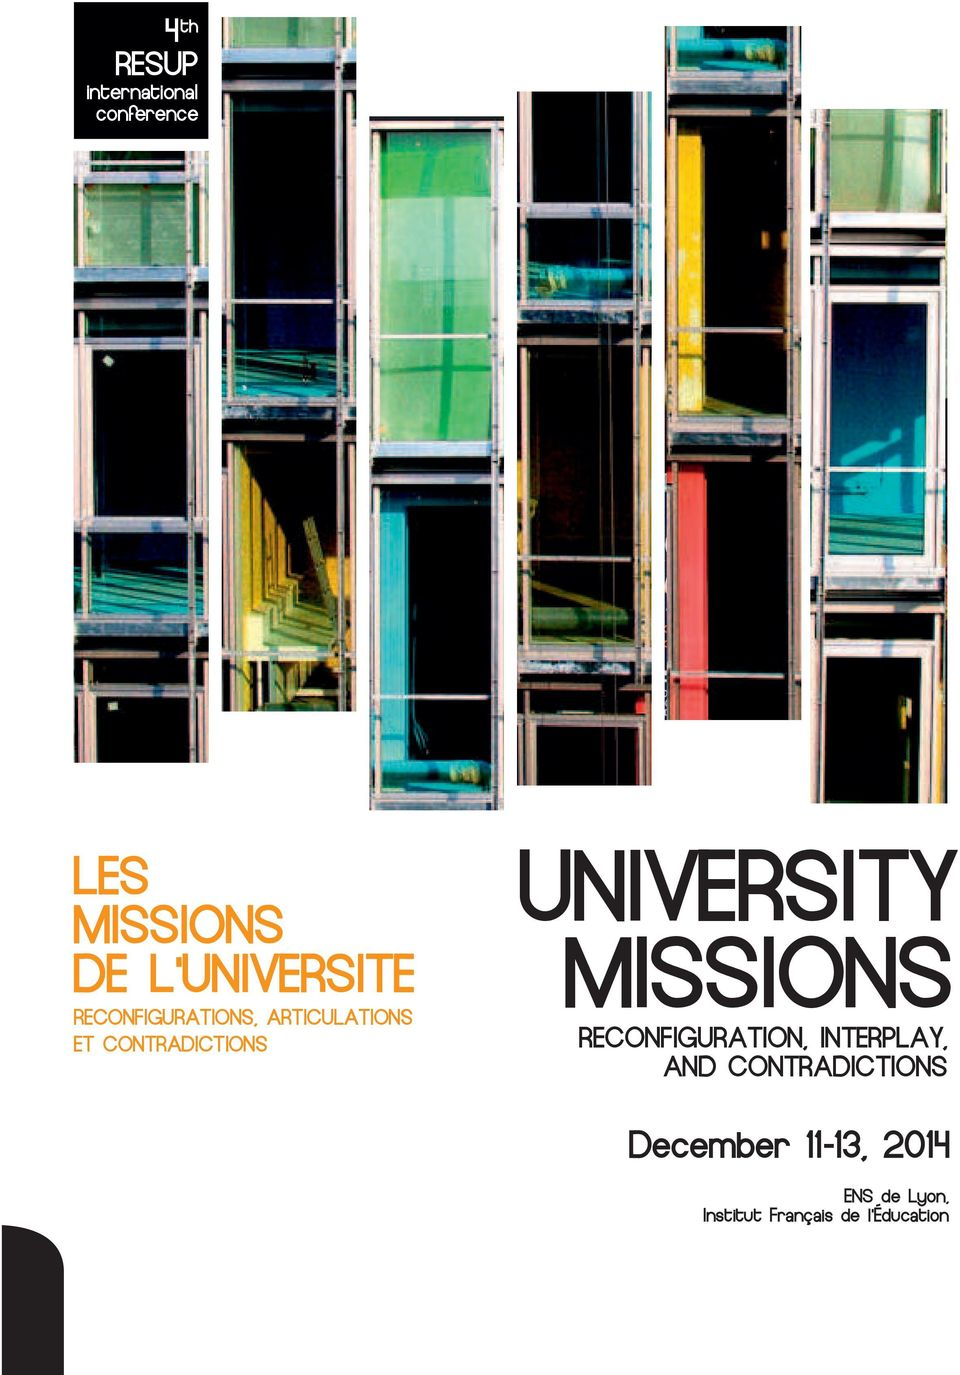 UNIVERSITY MISSIONS RECONFIGURATION, INTERPLAY,